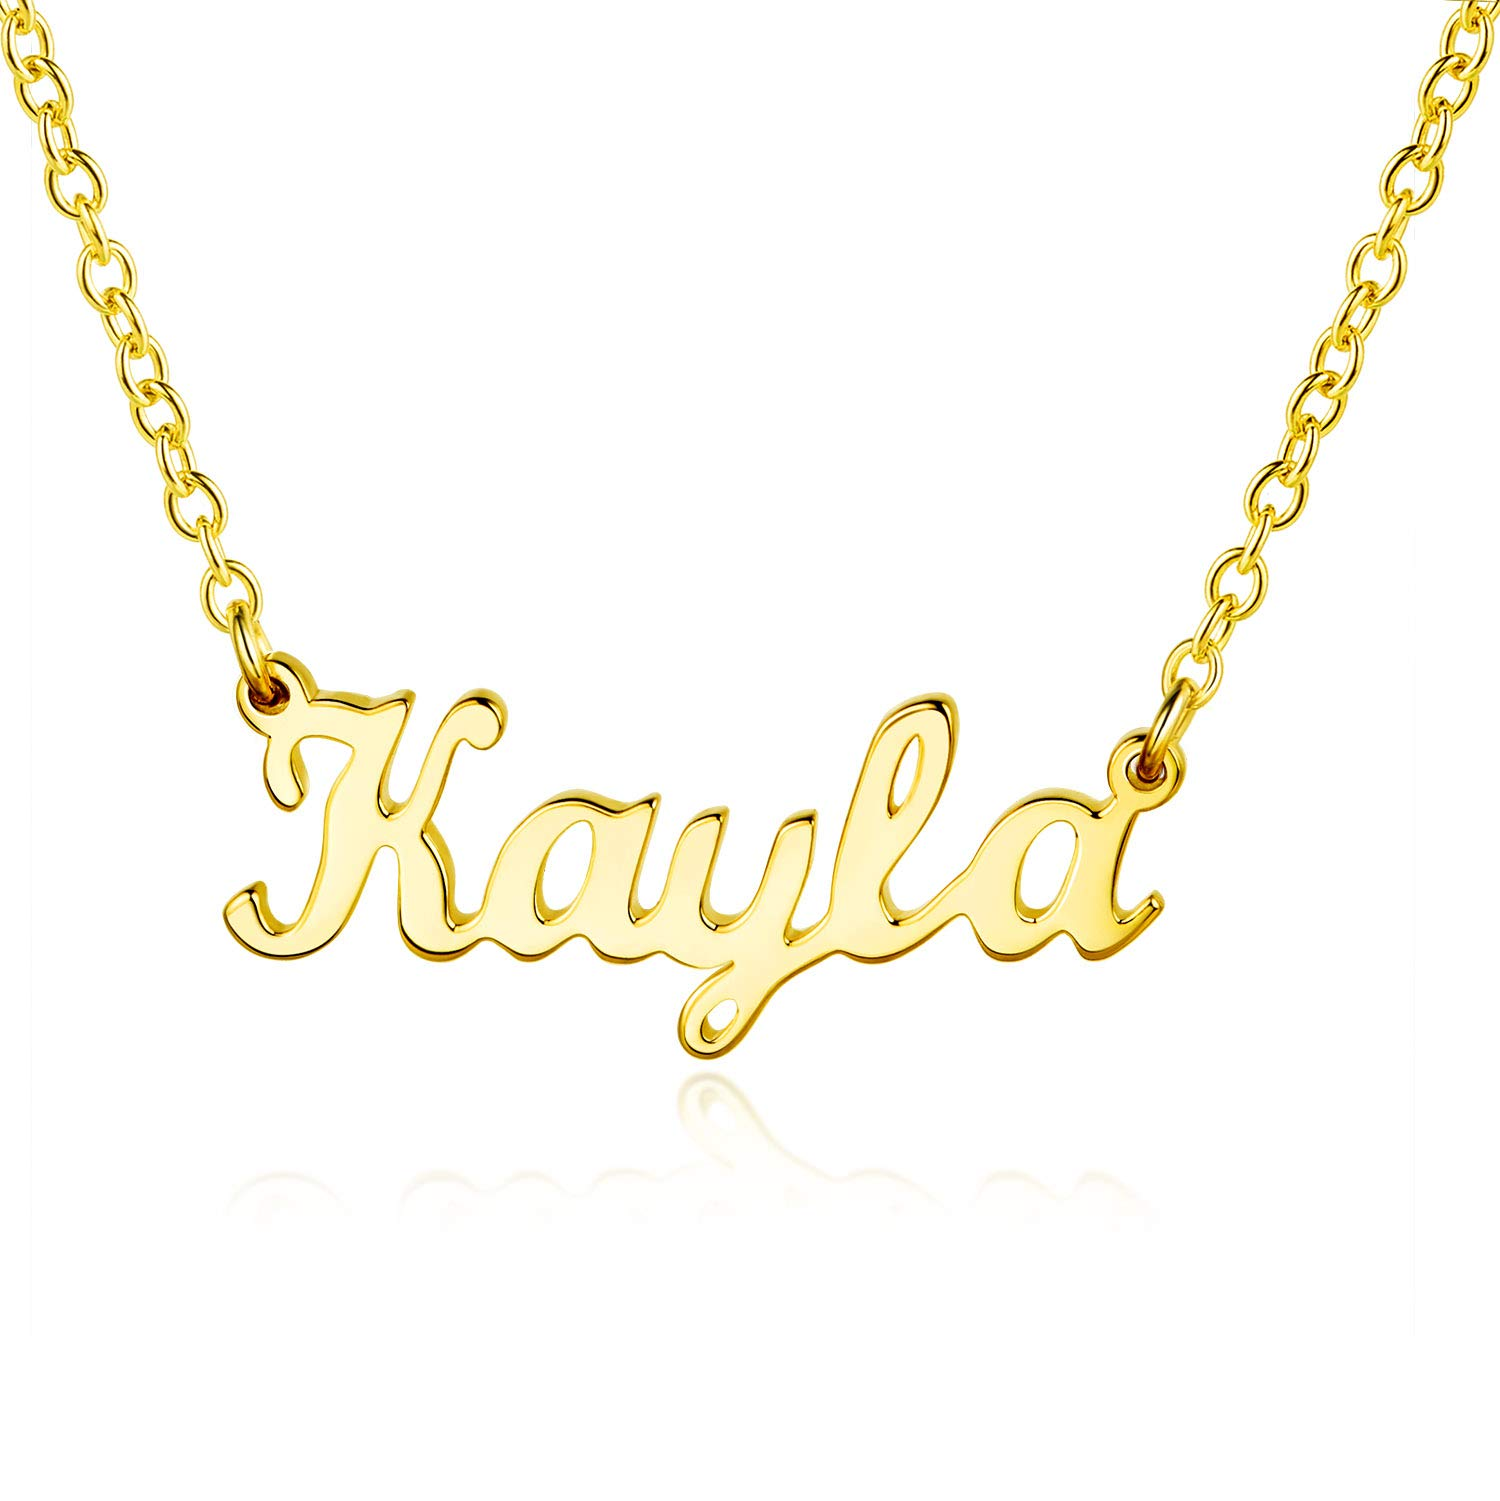 MISSLOVE Custom Name Necklace Personalized-925 Sterling Silver Necklace 14K Gold Plated Women Jewelry